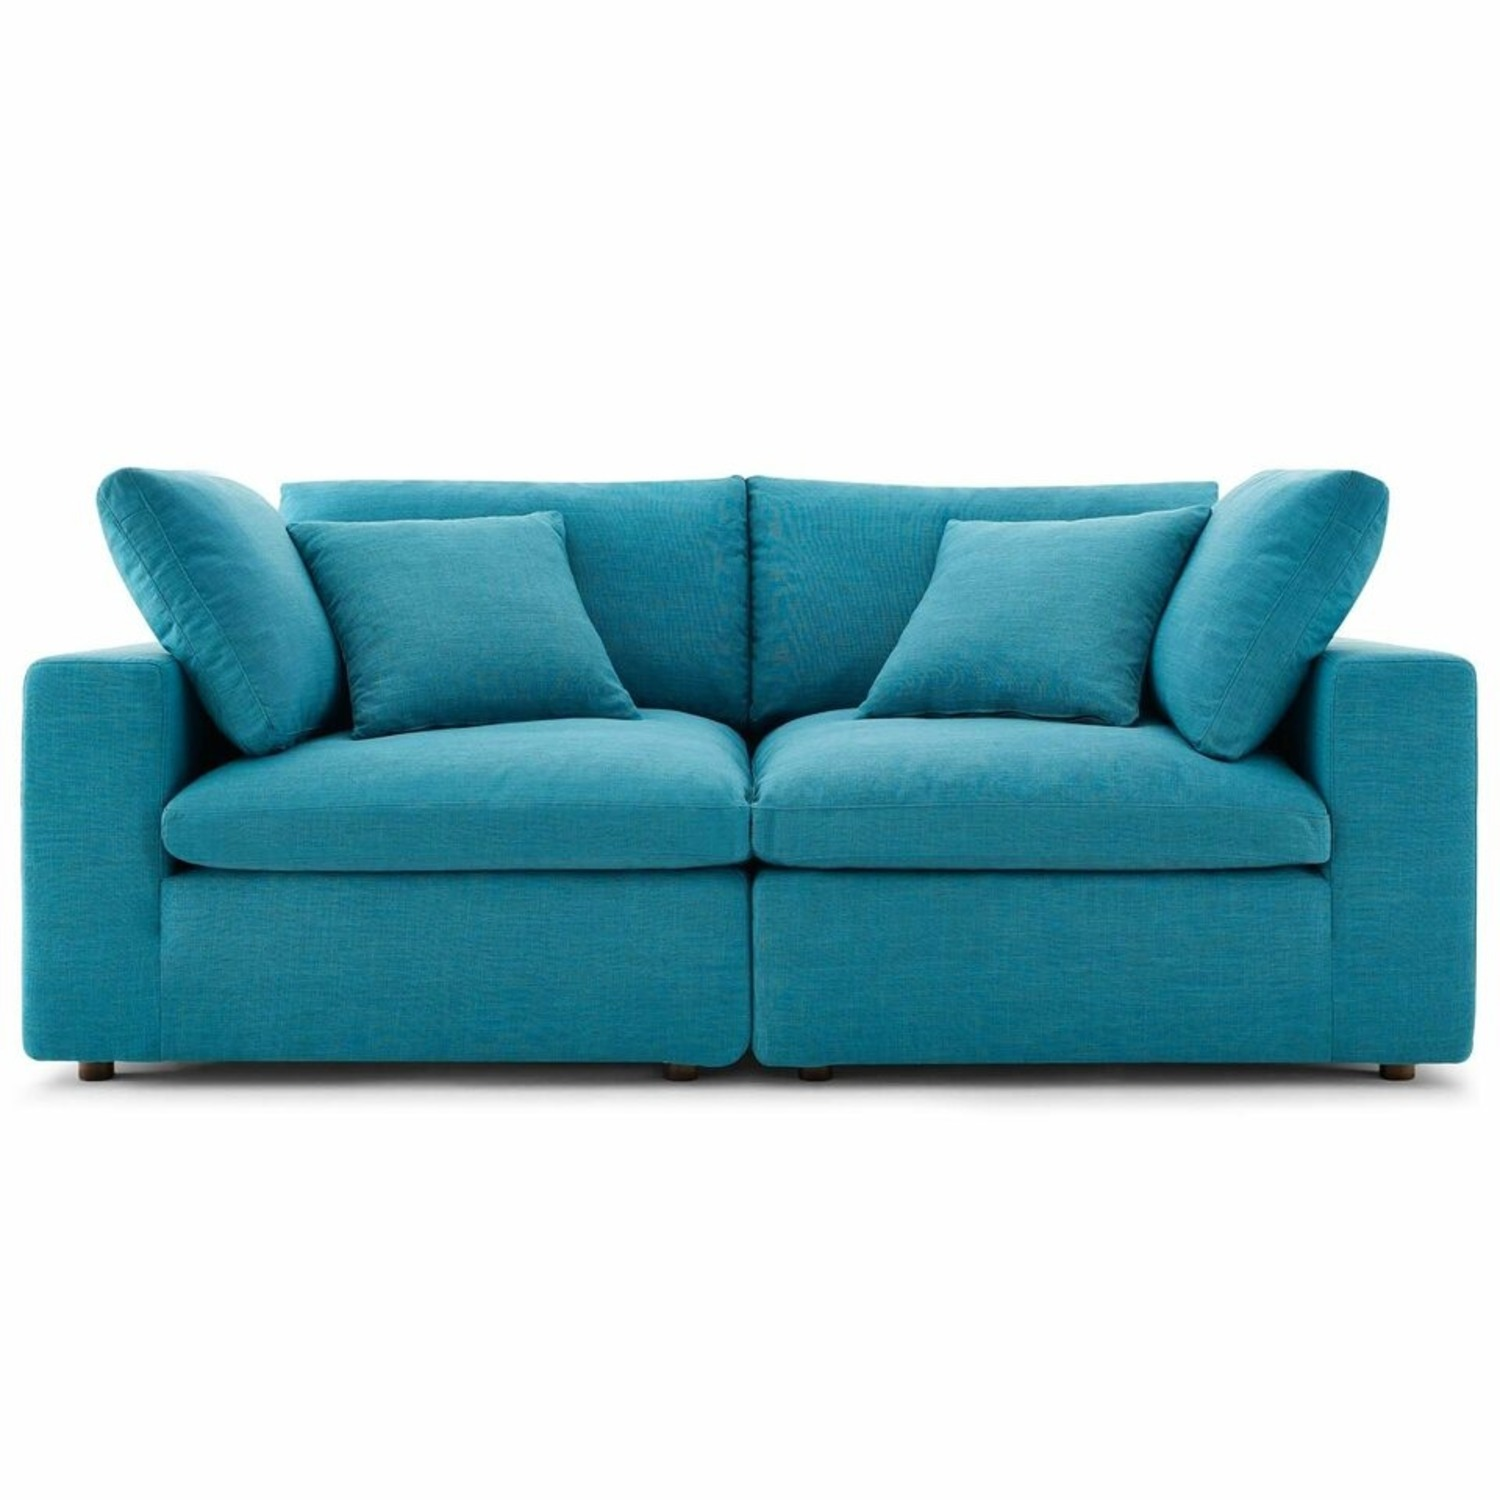 2-Piece Sectional Sofa In Teal Linen Fabric - image-1